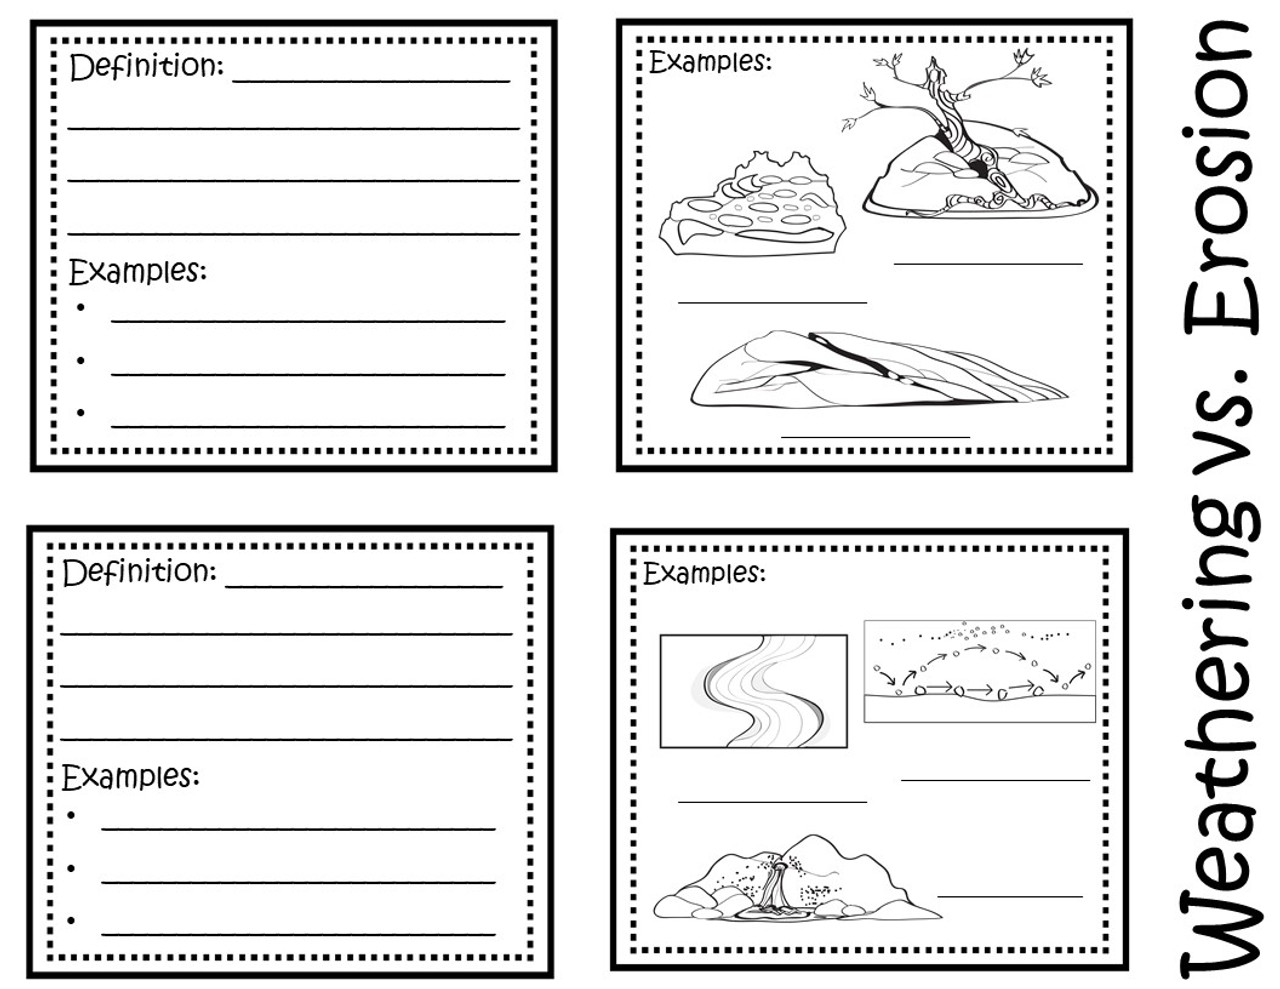 hight resolution of Weathering and Erosion Foldable - Amped Up Learning